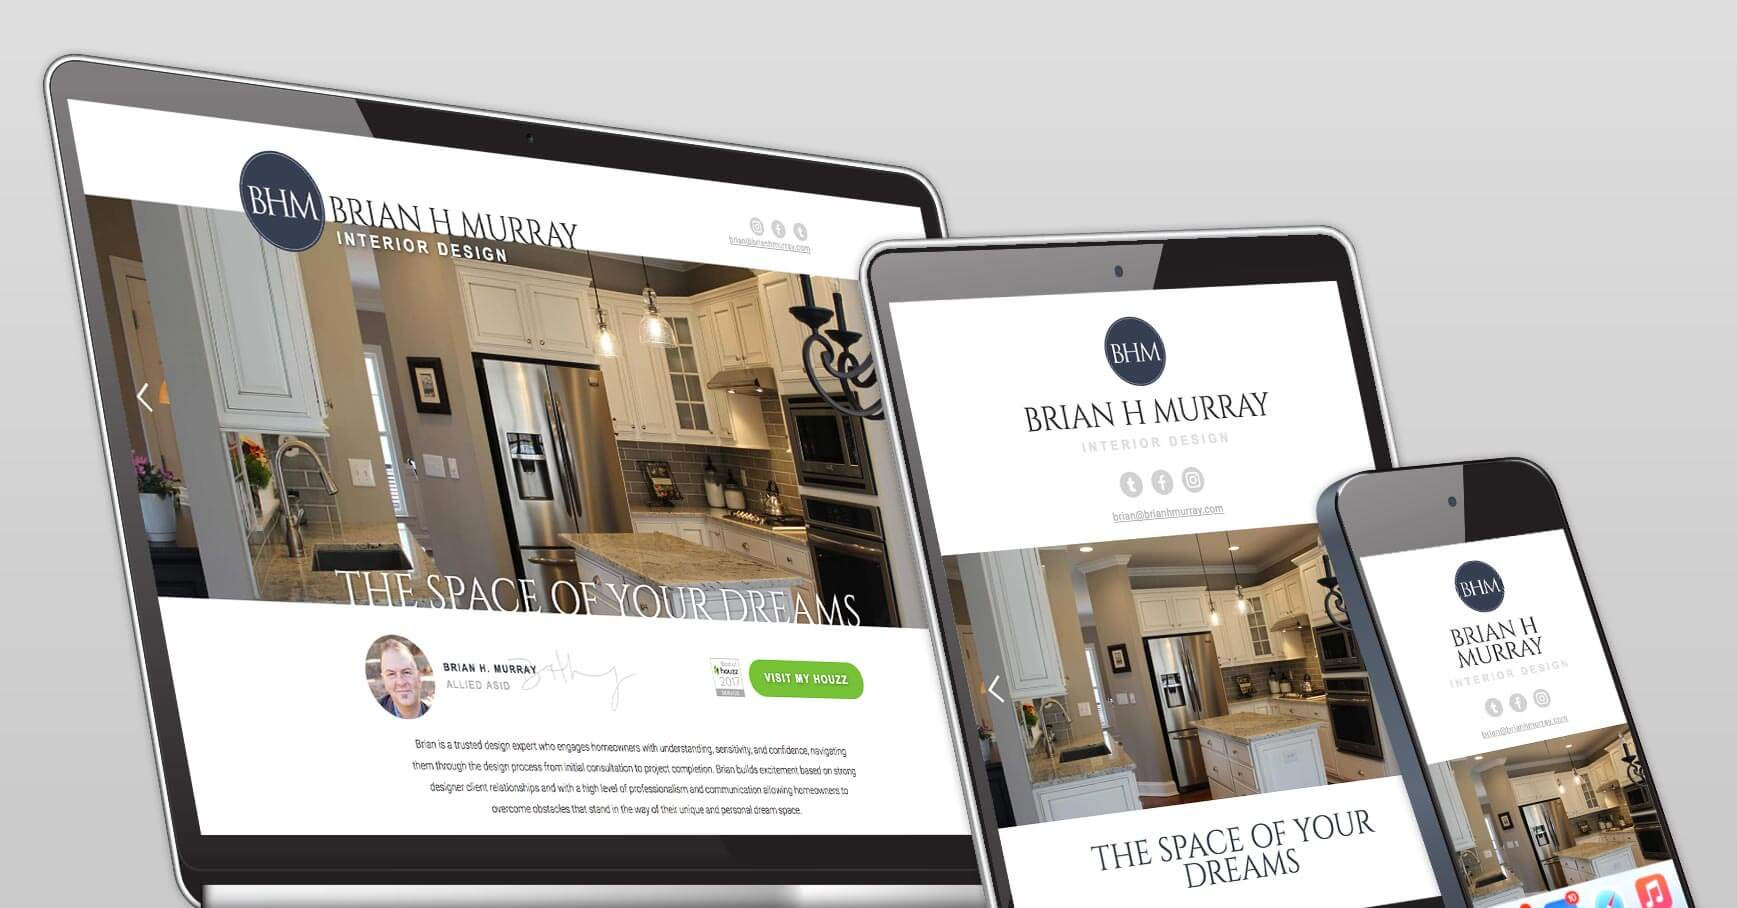 Brian H Murray web design